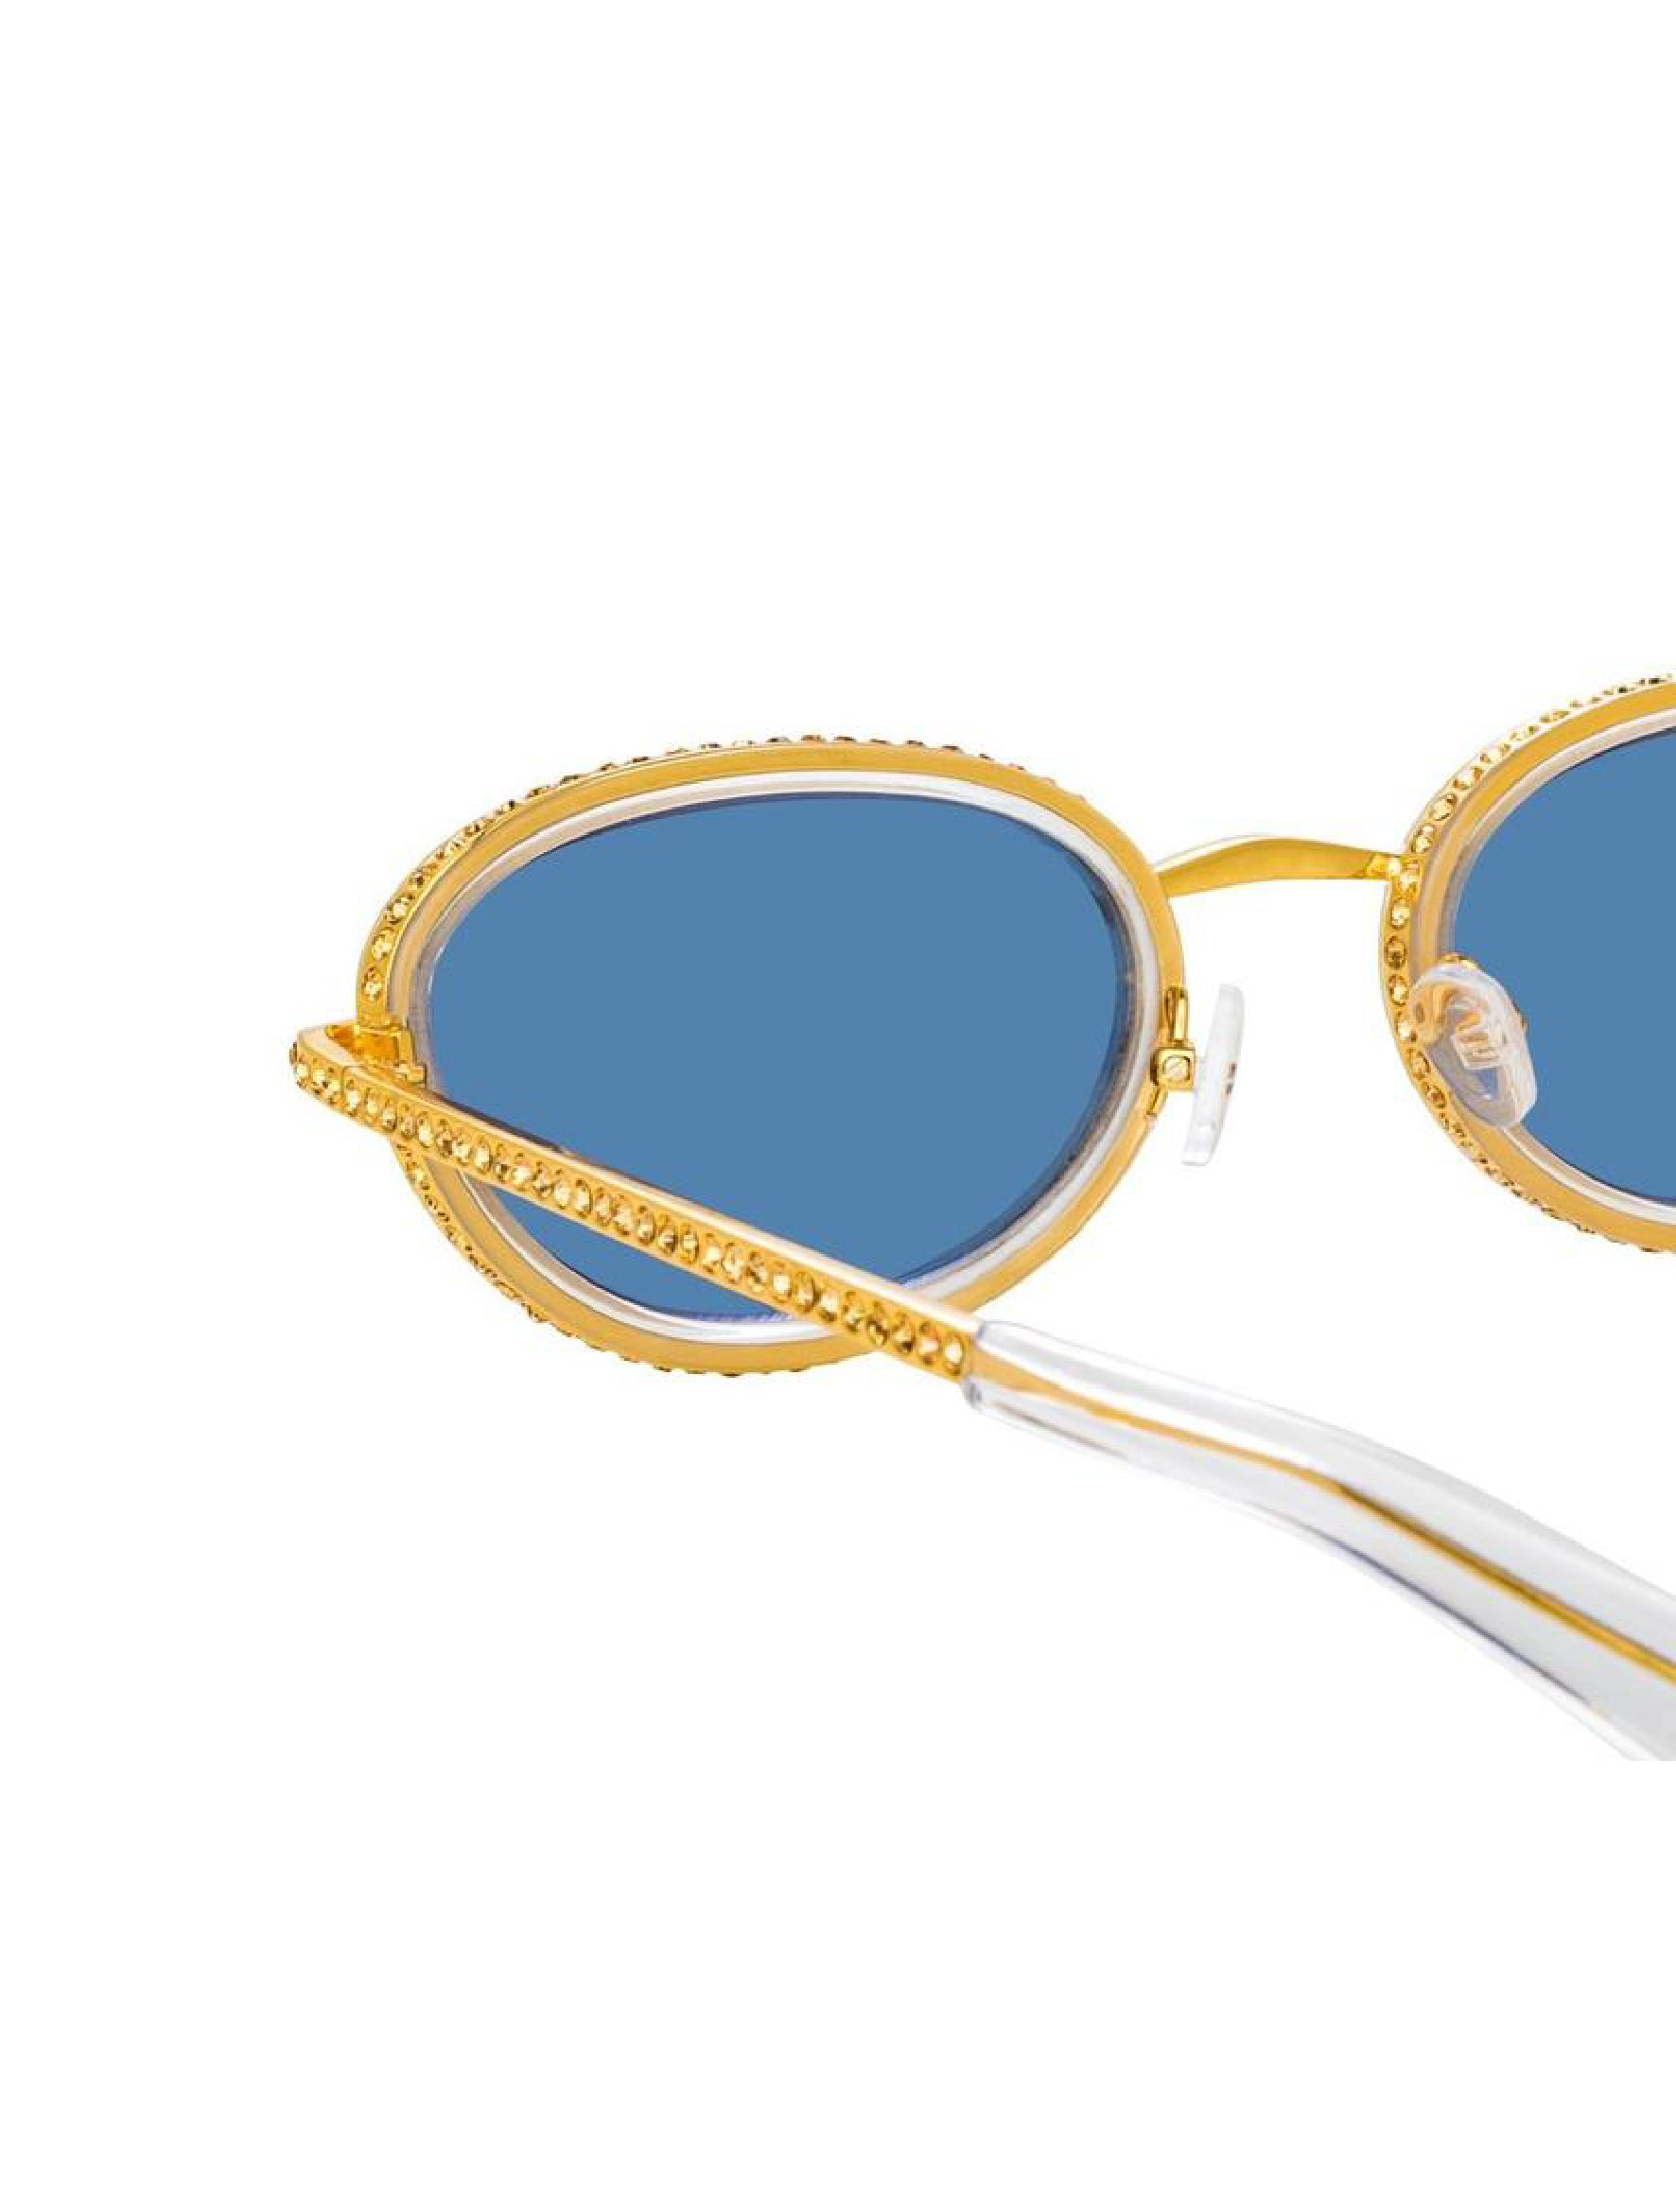 Oval Sunglasses in Yellow Gold Tone